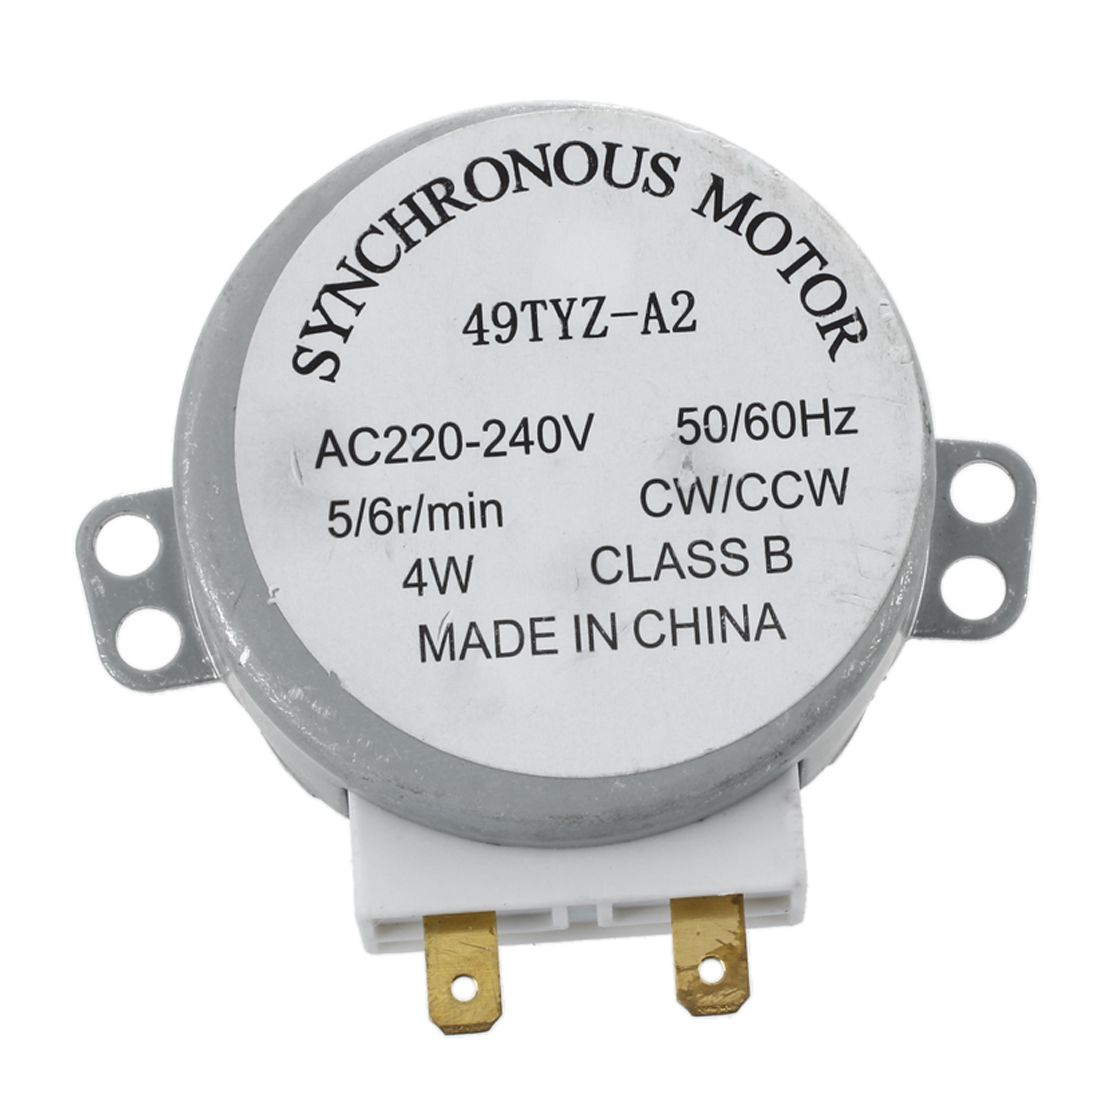 цена на AC 220-240V 50/60Hz 5/6RPM 4W Turntable Synchronous Motor for miniwave Oven Microwave oven accessories